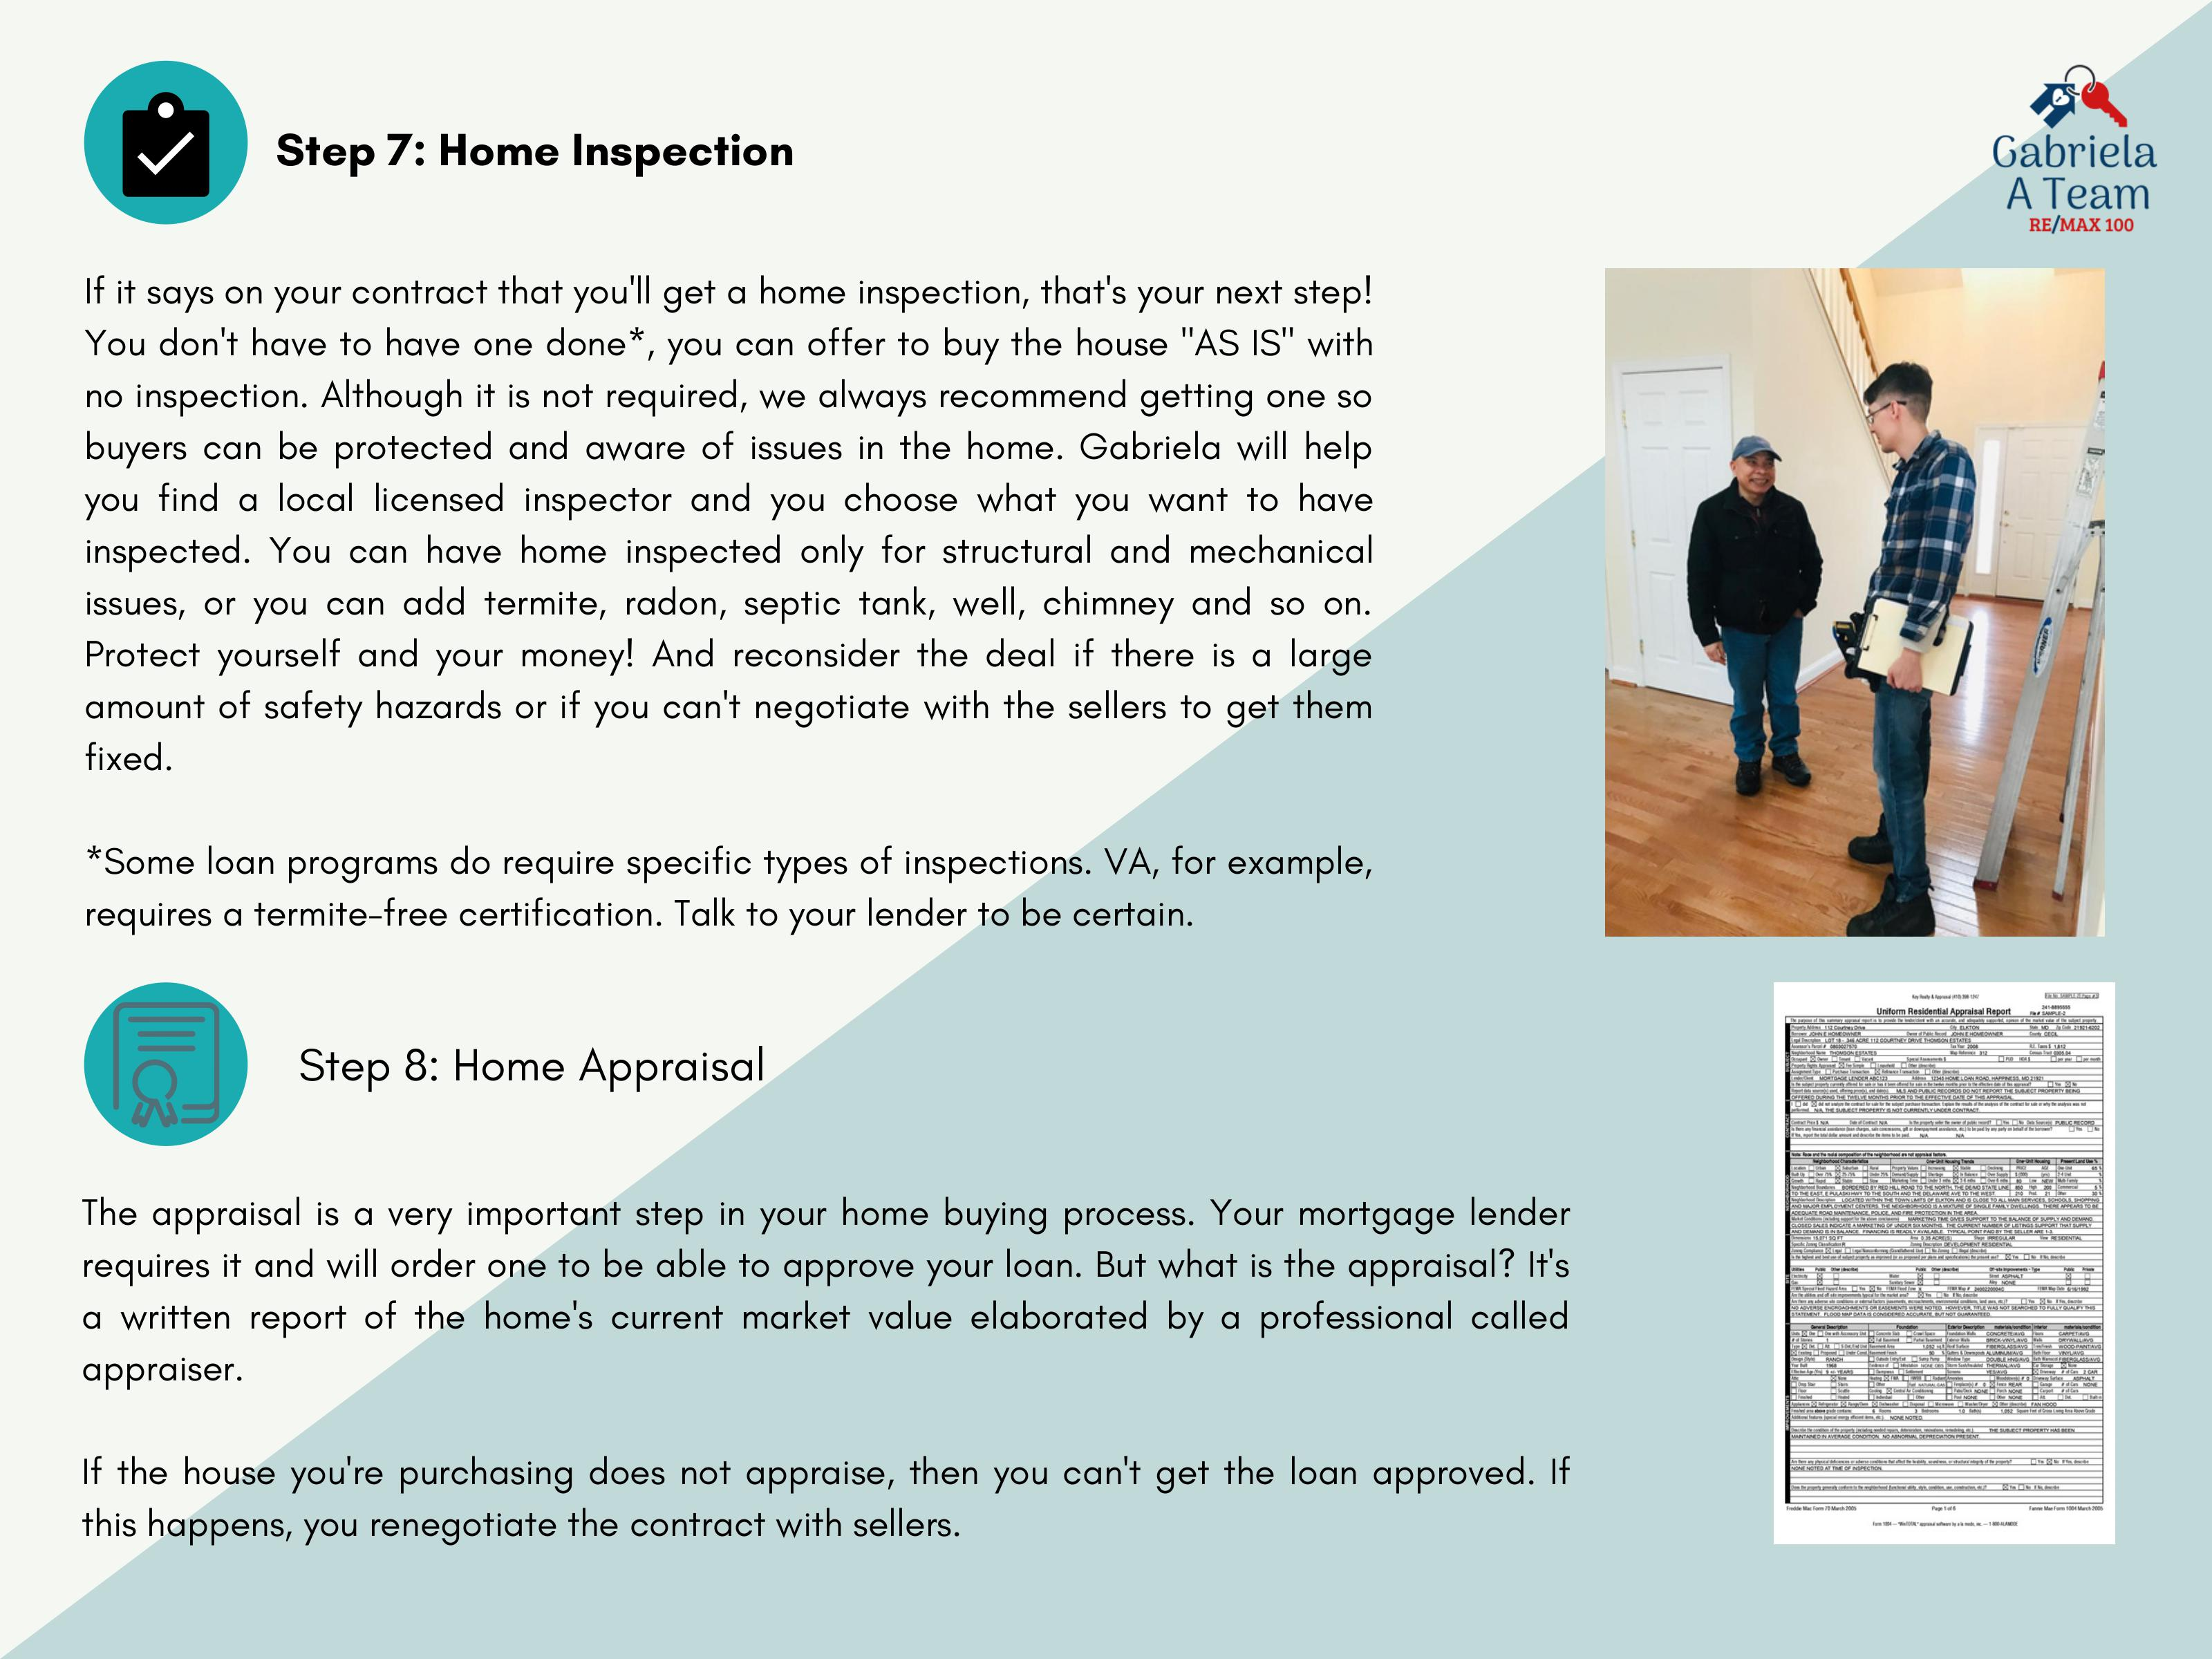 8th slide of home buying process 7th and 8th steps